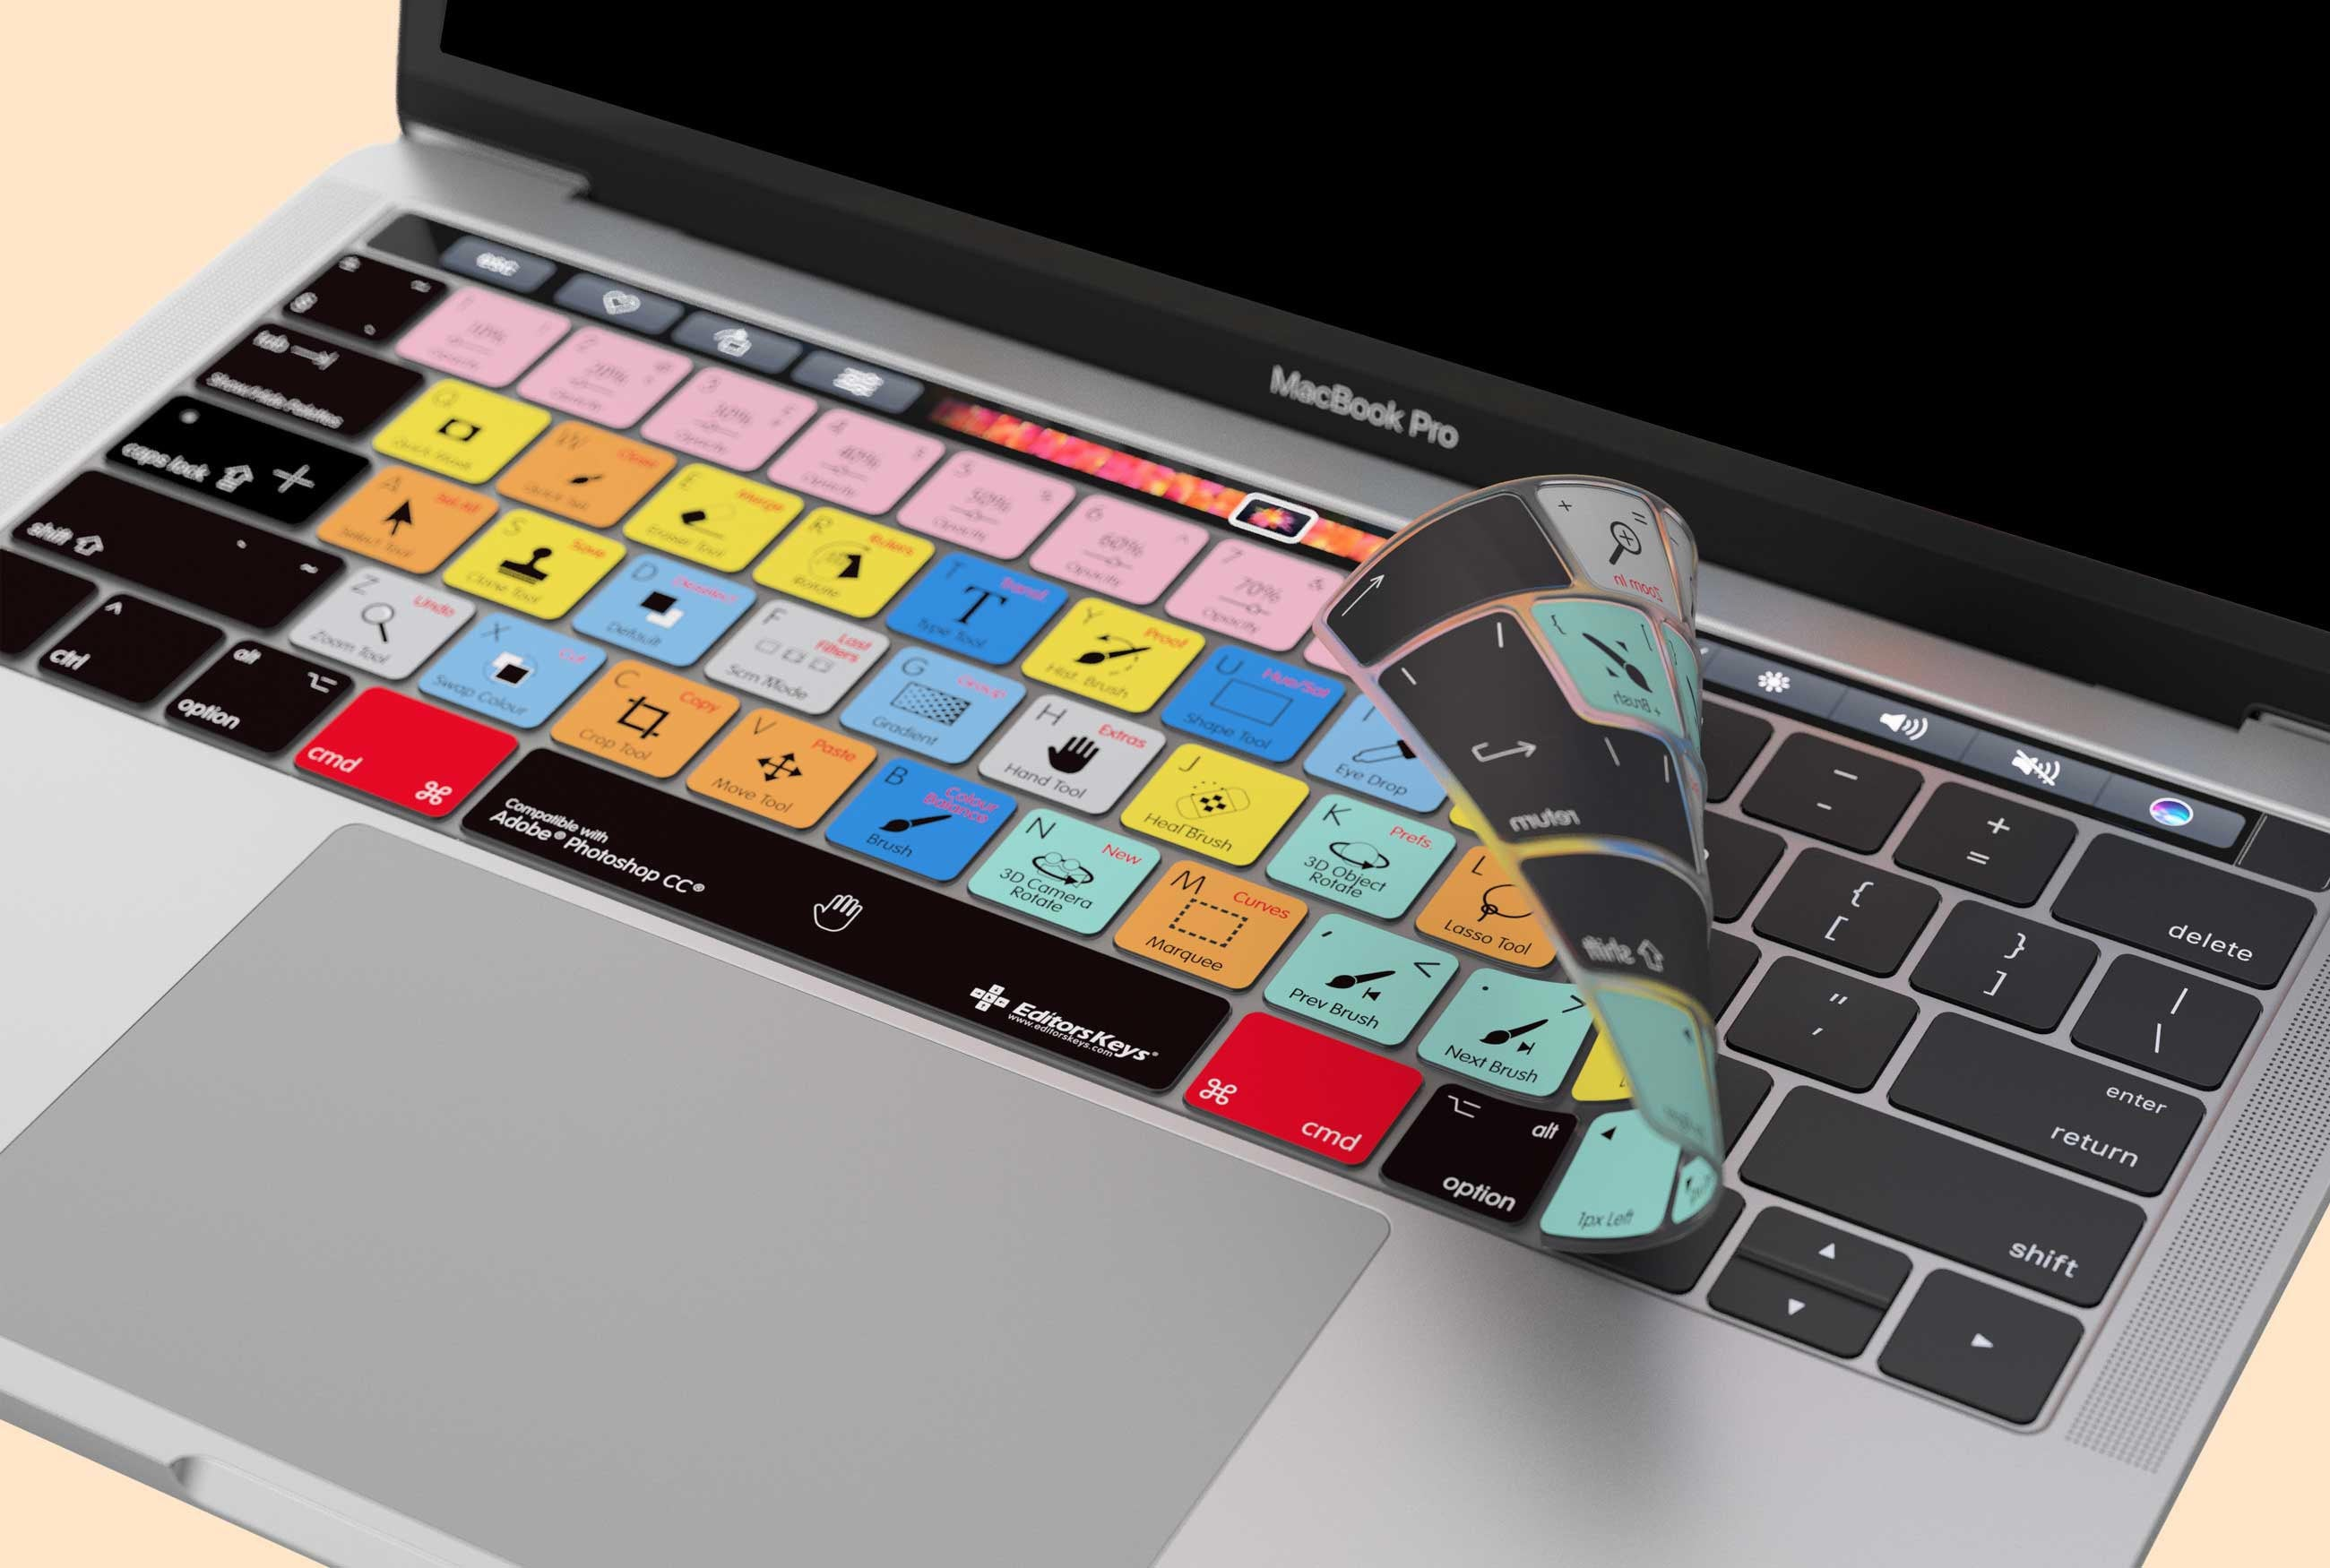 MacBook Pro Keyboard Covers - Also for iMac and Surface